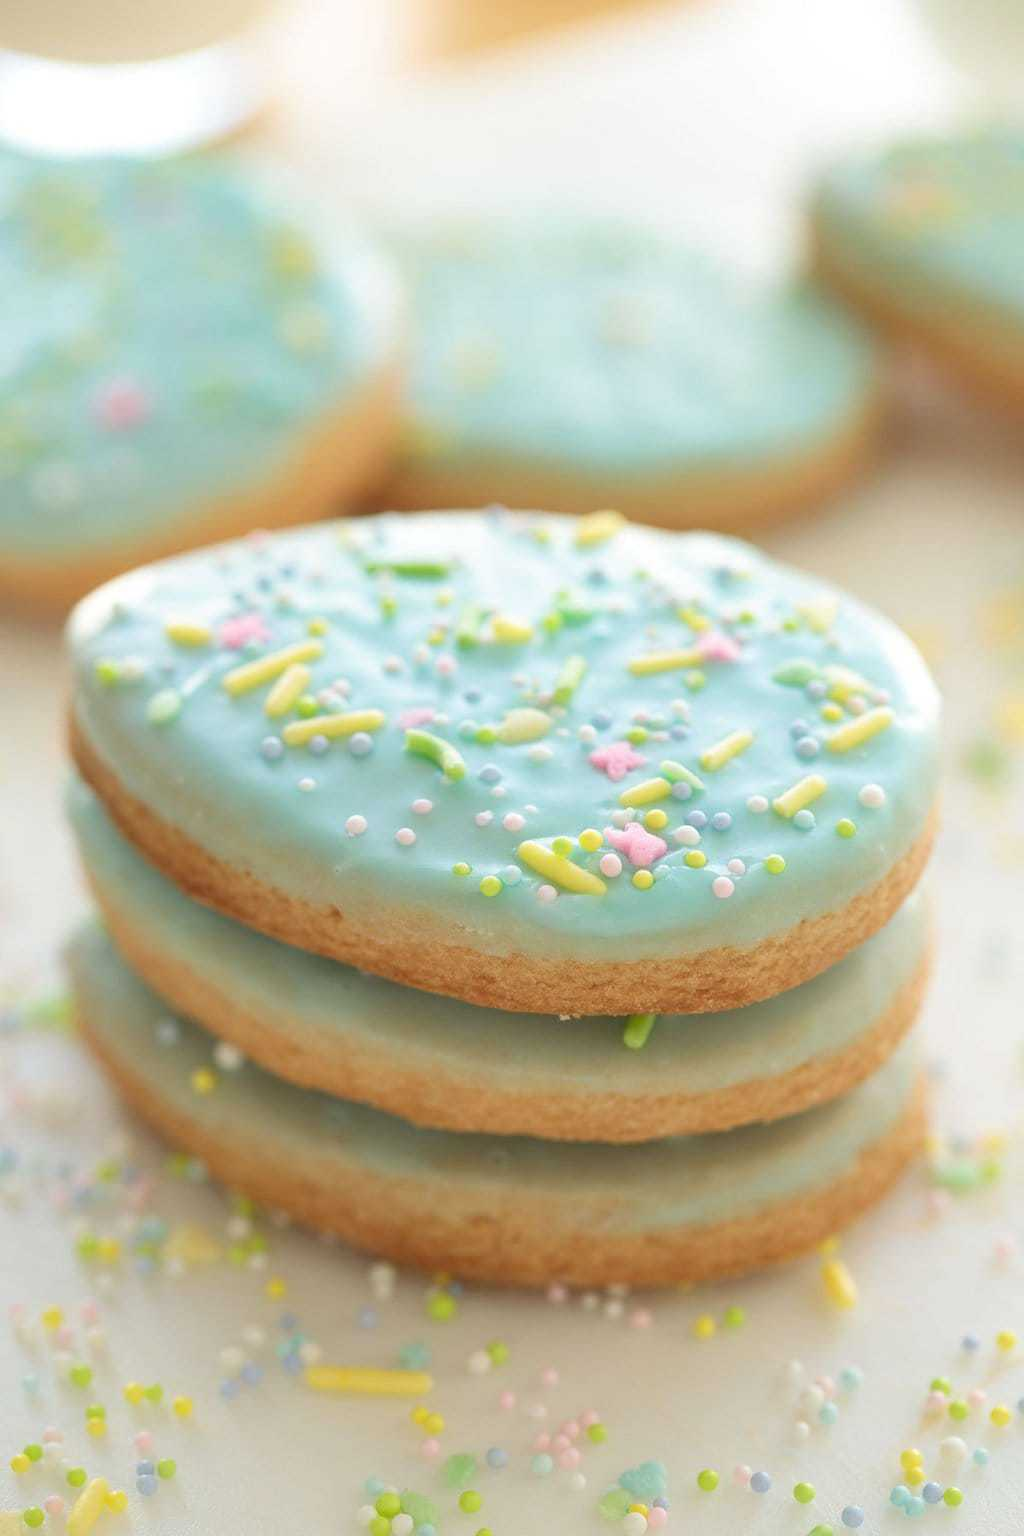 Ultra closeup photo of a stack of three Spring Shortbread Cookies on a white surface with pastel sprinkles all around.